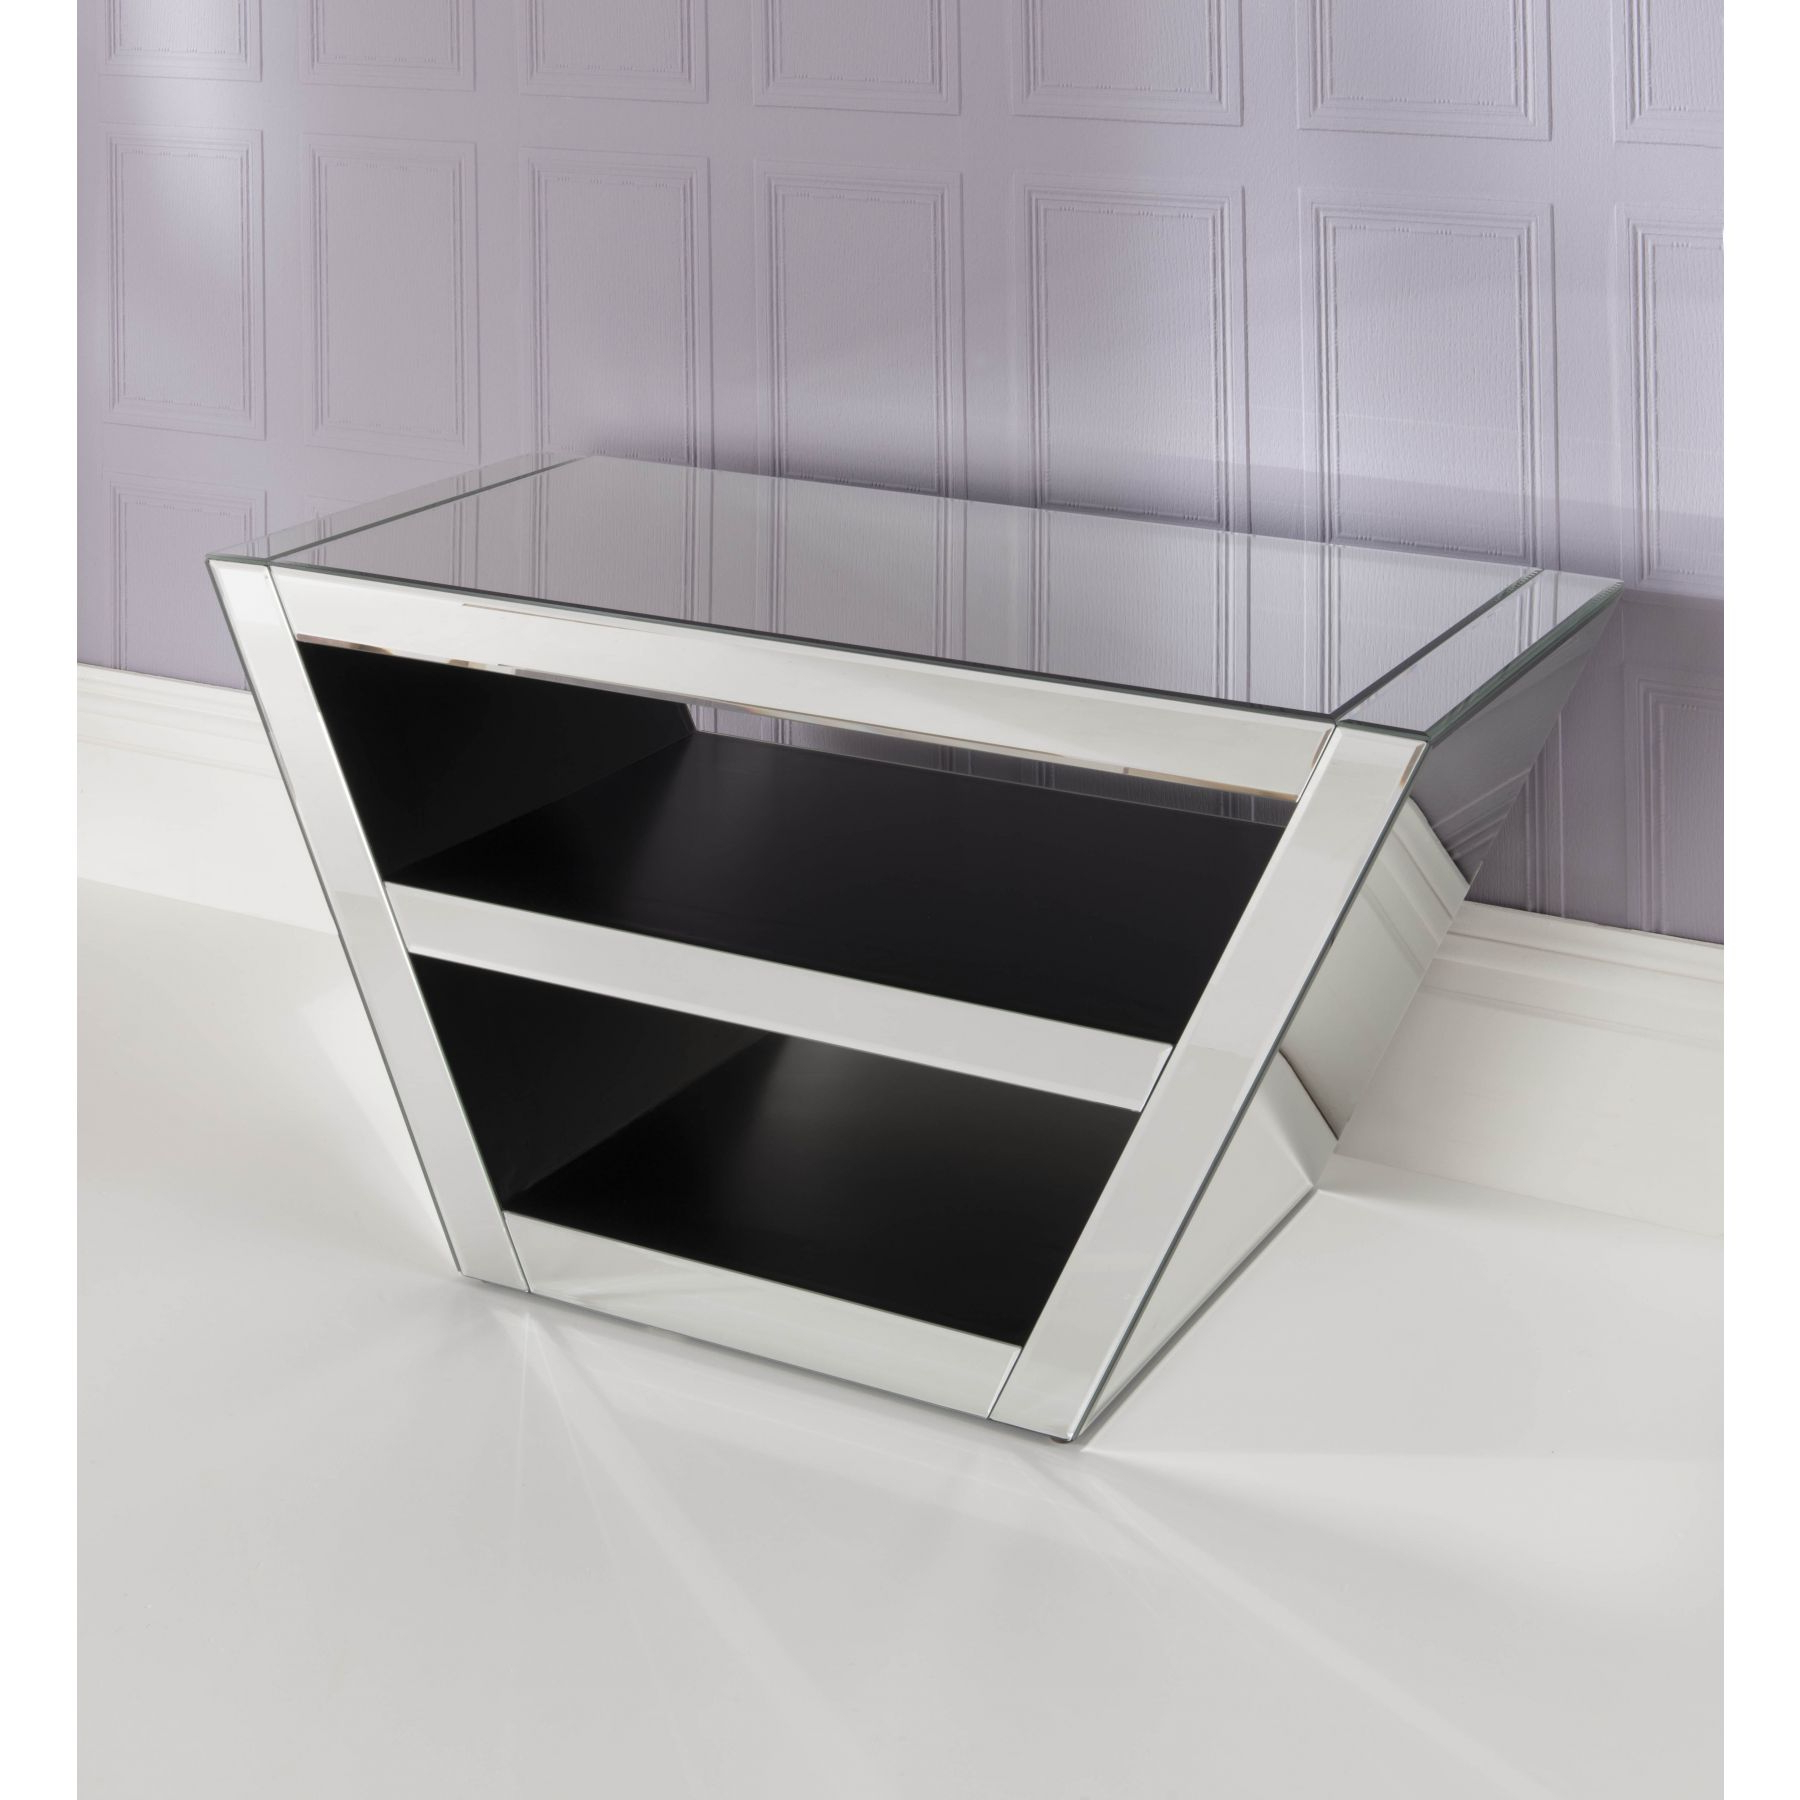 Favorite Target Tv Stands Bookshelf Stand Ikea Wall Mounted Cabinet 55 Inch For Grey Corner Tv Stands (Gallery 9 of 20)